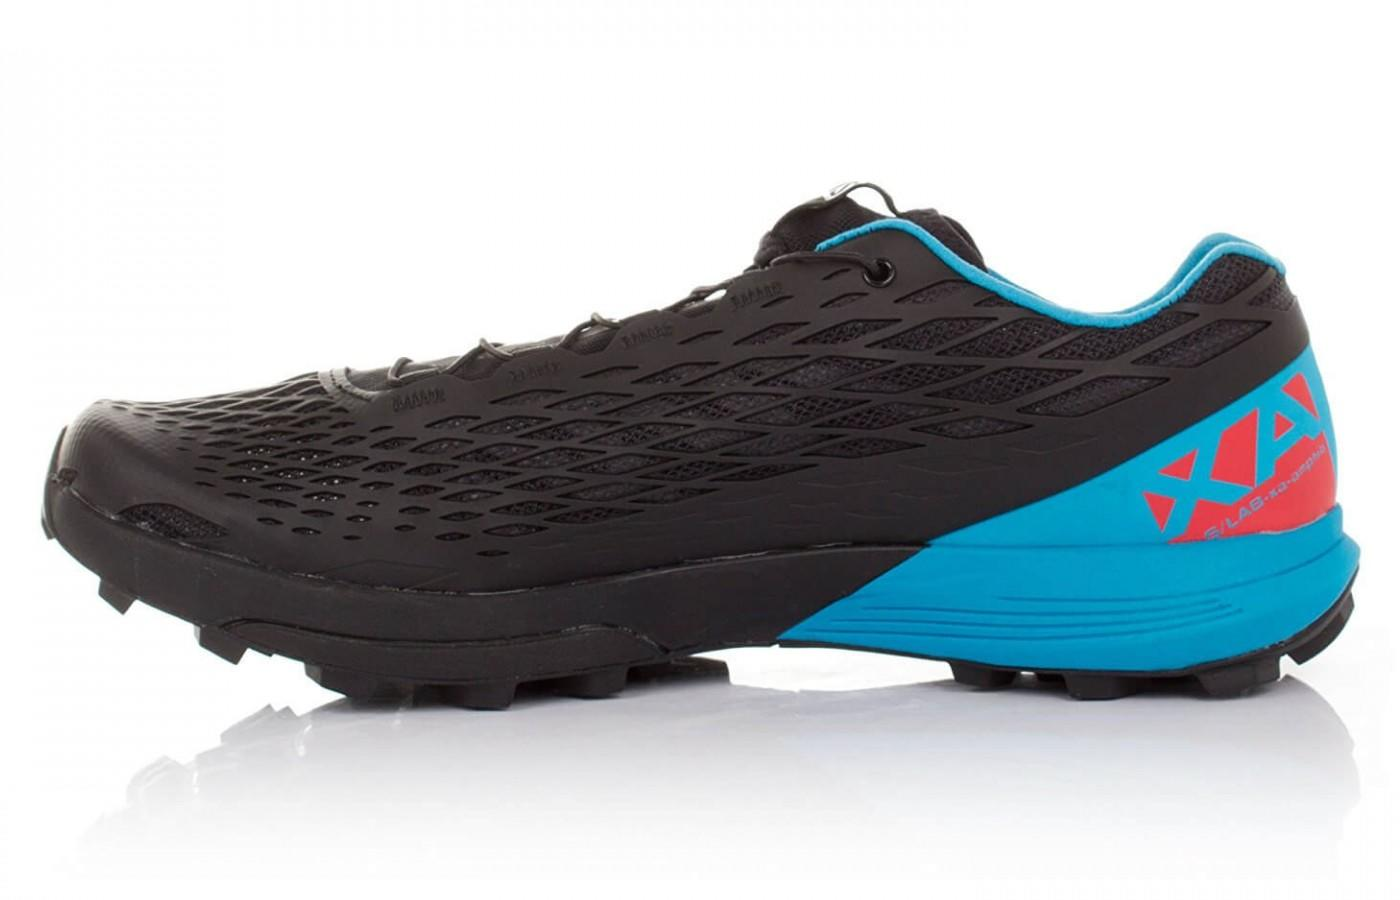 the Salomon S-Lab Xa Amphib has a quick drying and breathable mesh upper